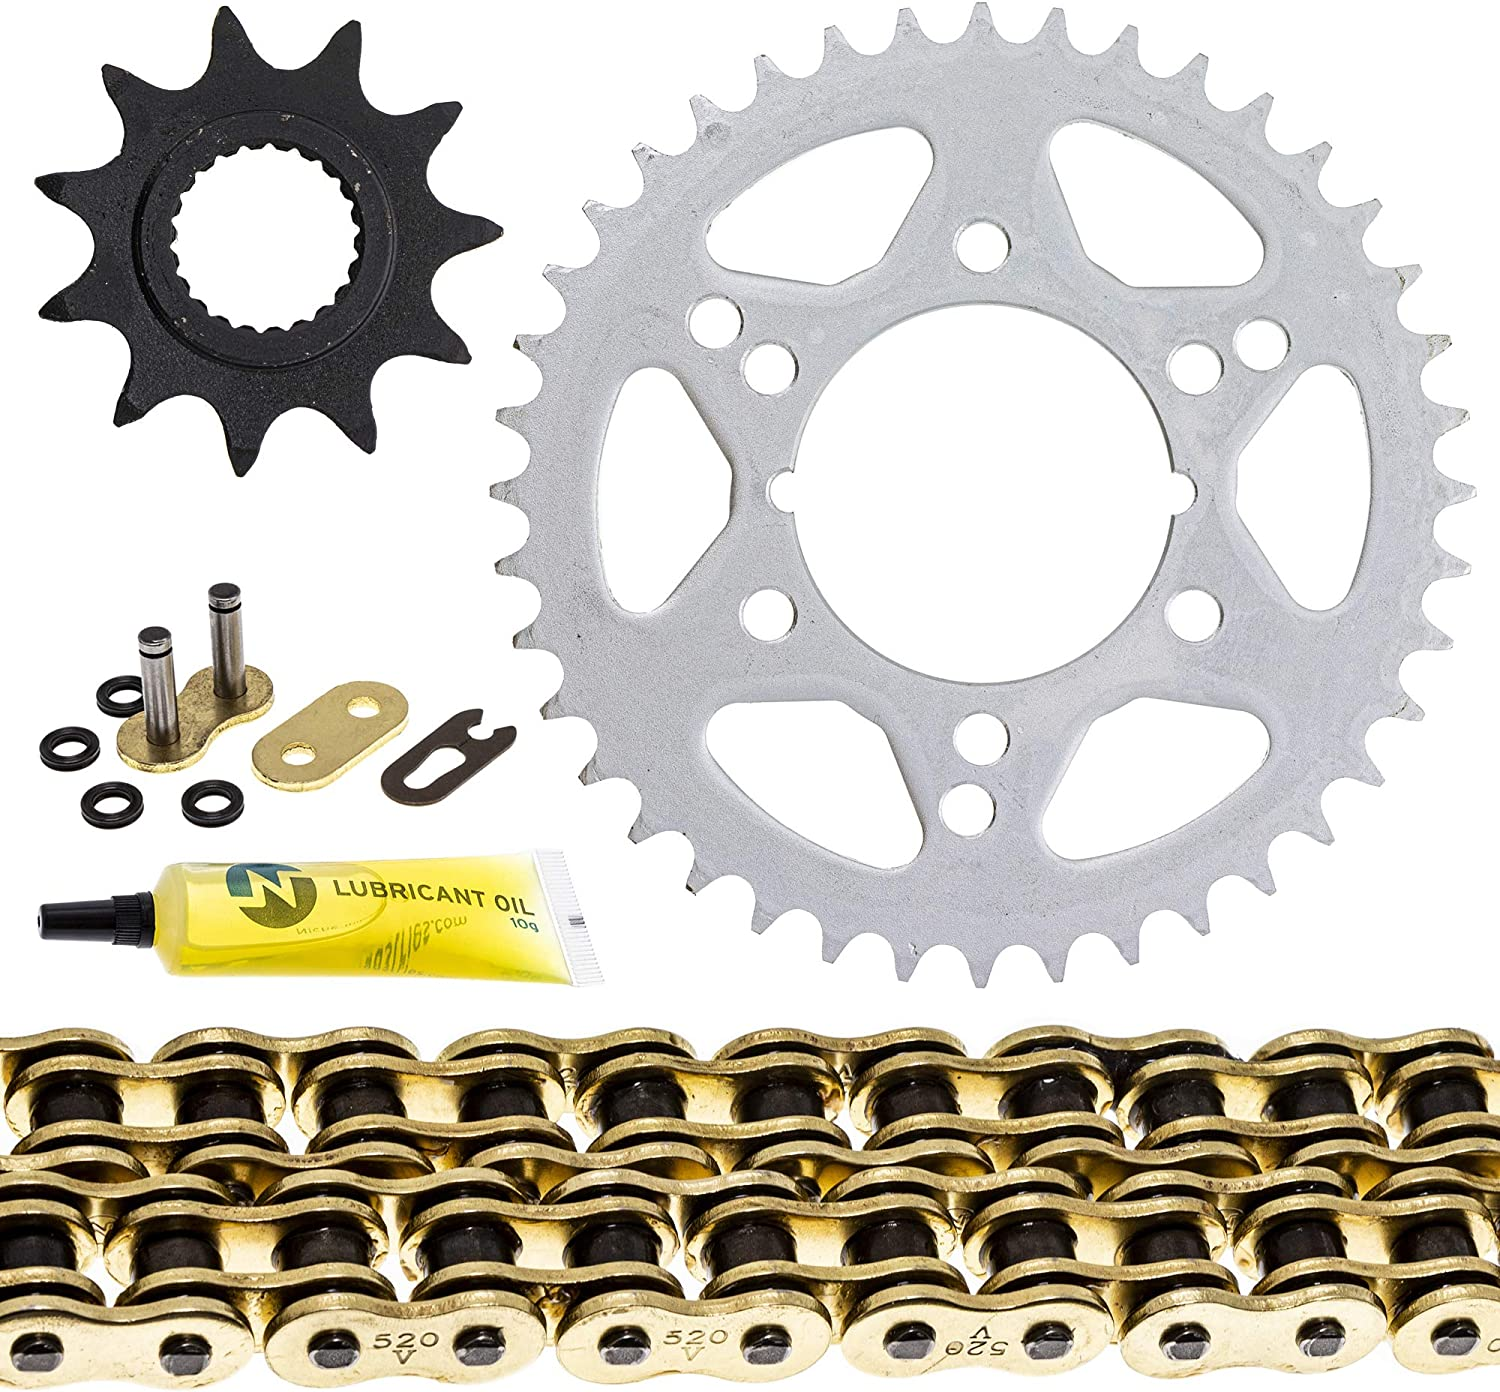 NICHE Drive Sprocket Chain Combo for Polaris Trail Boss 330 325 Front 11 Rear 40 Tooth 520V-X X-Ring 78 Links